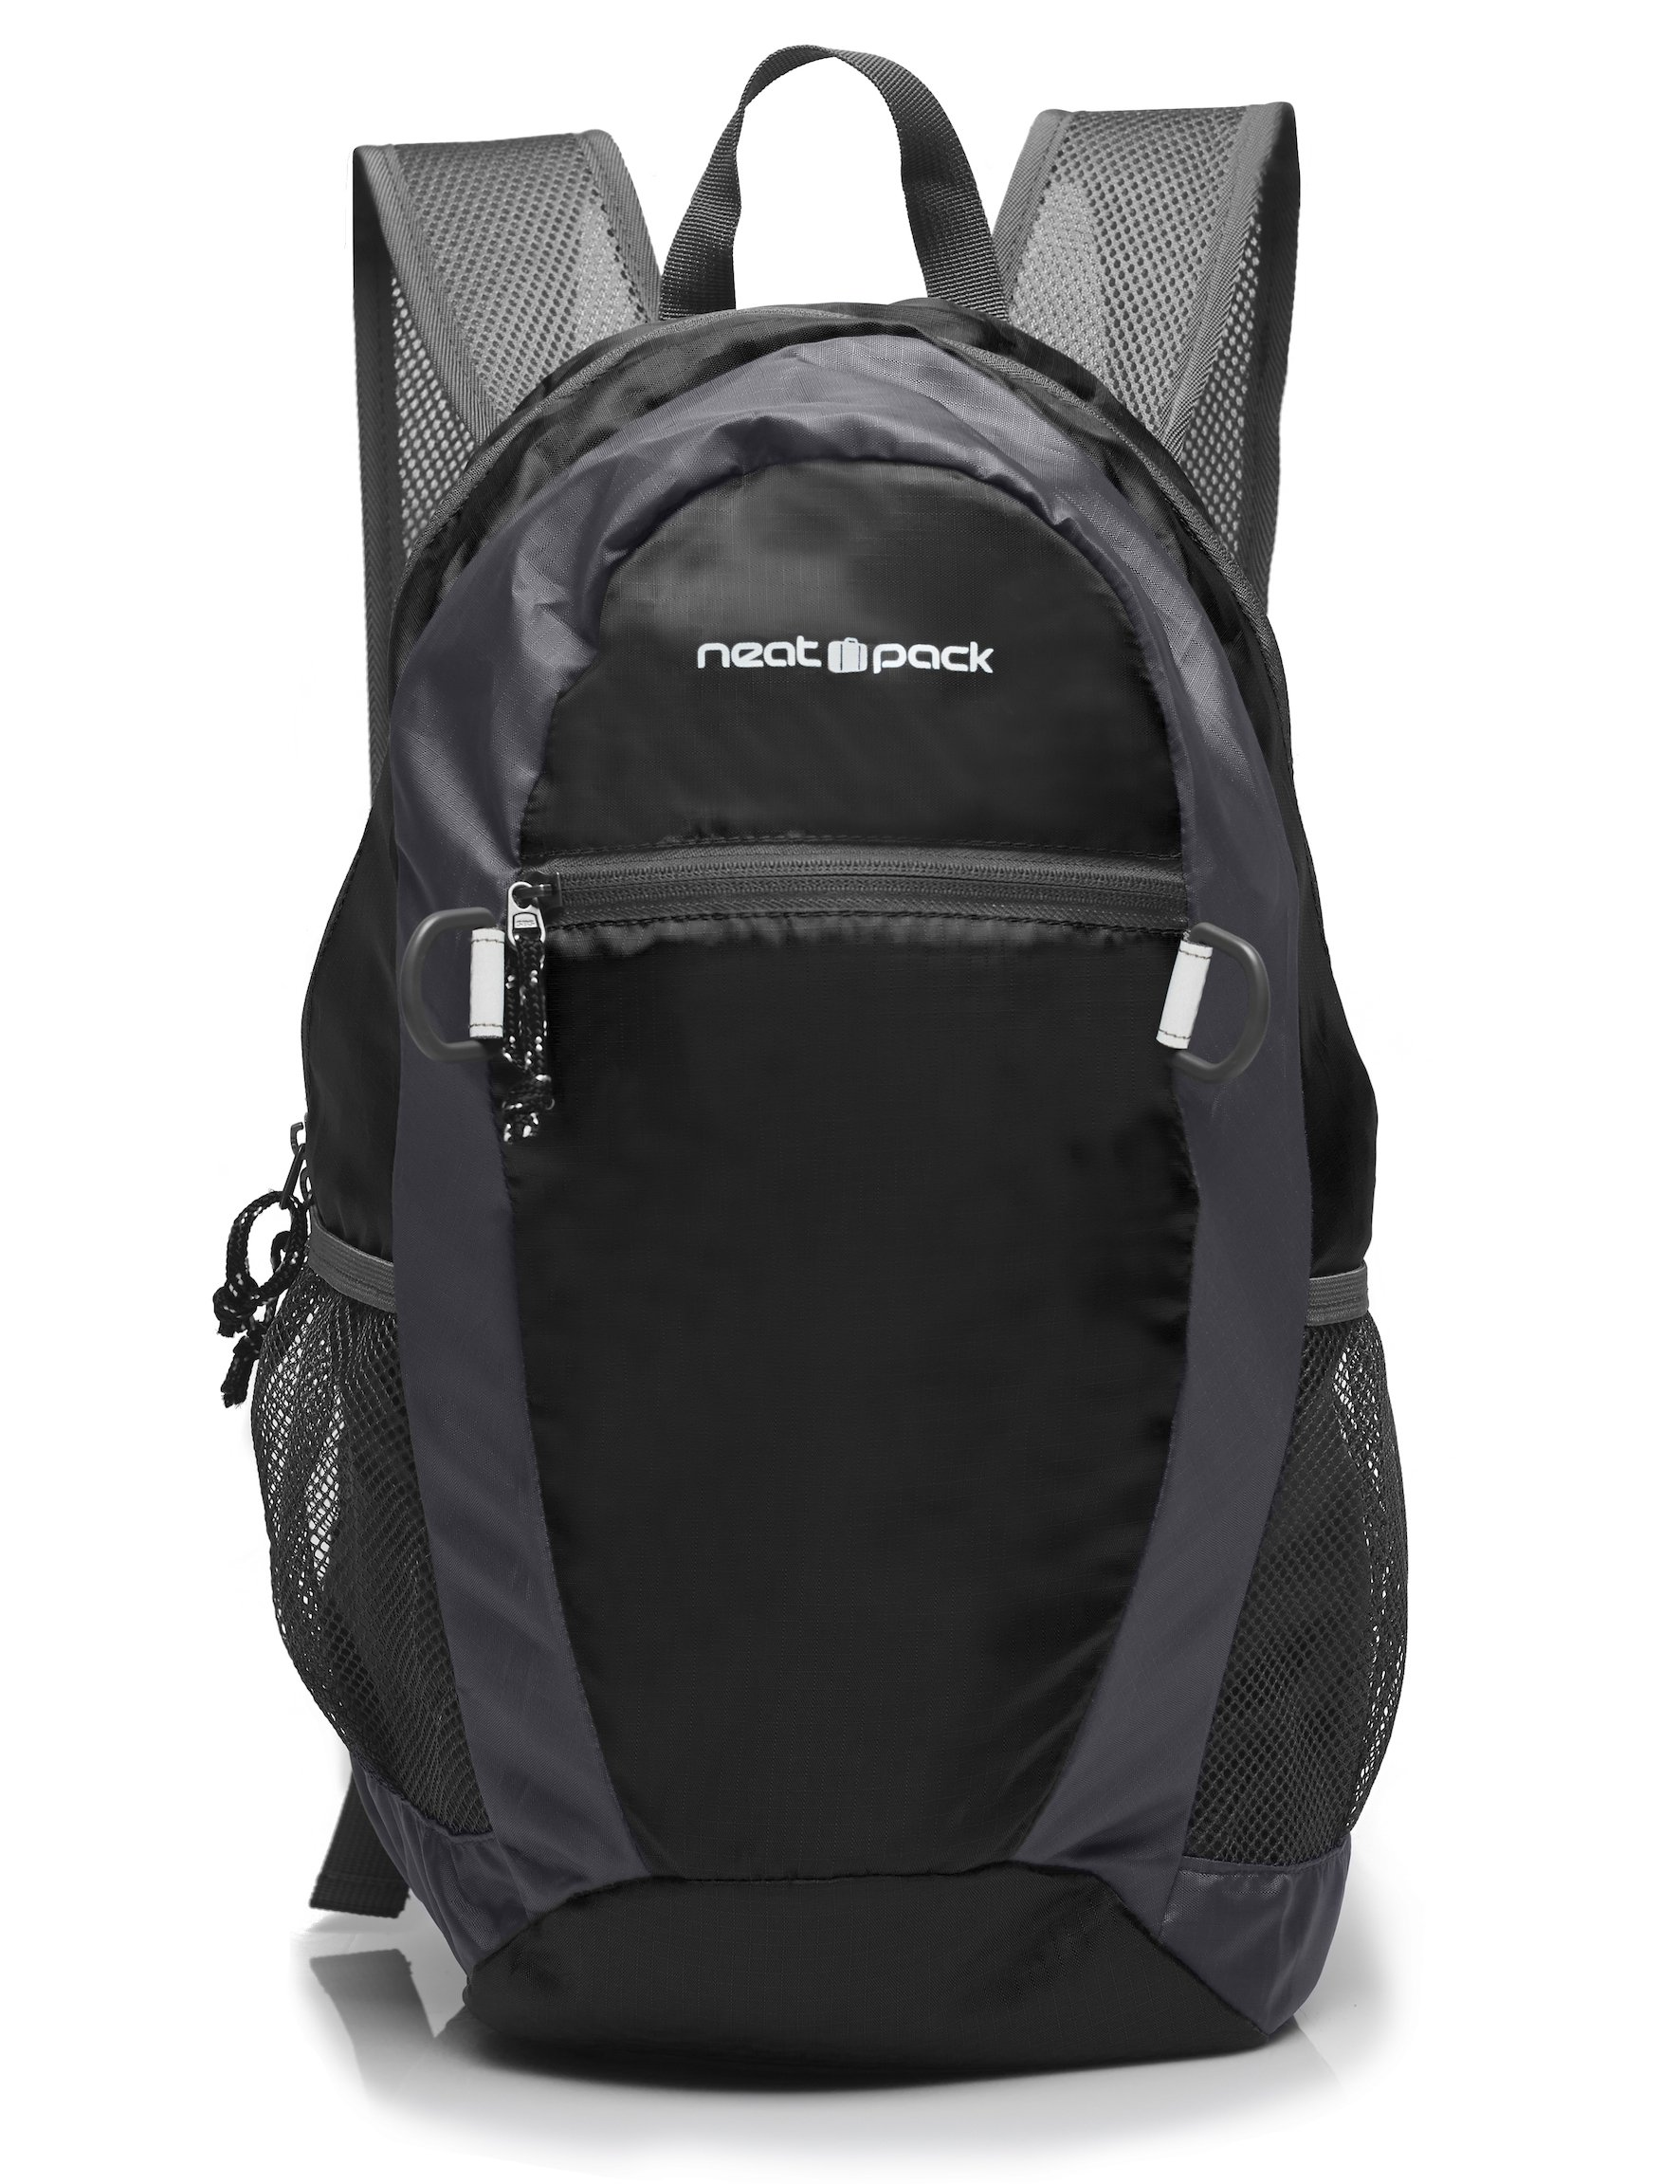 NeatPack Durable, Foldable Nylon Backpack/Daypack with Security Zippers, 20L, Black